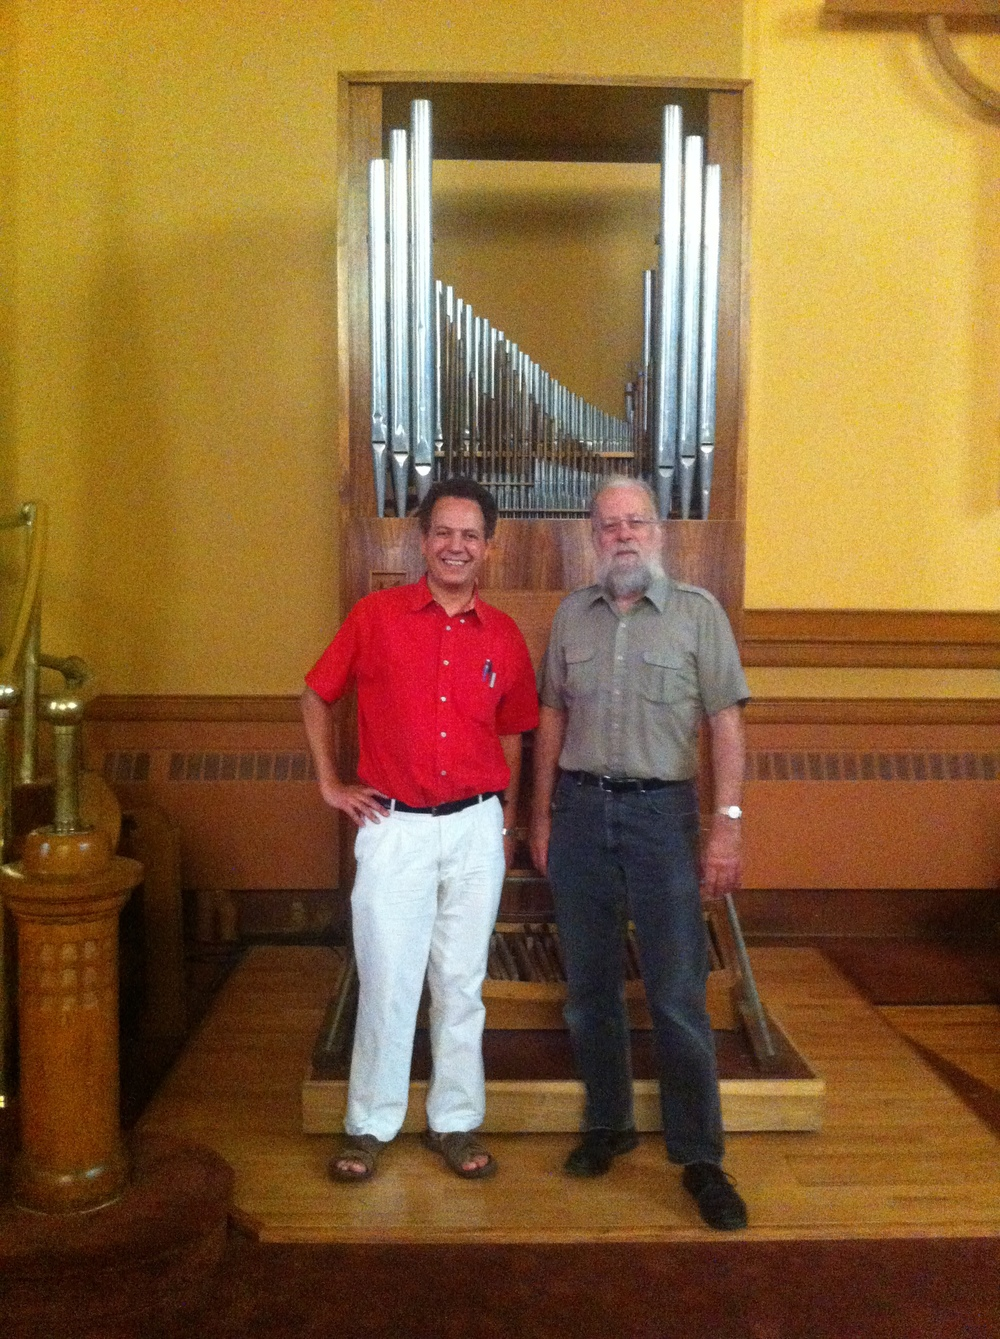 With Michael Barone (behind: Michael's Rieger organ, built in 1956)